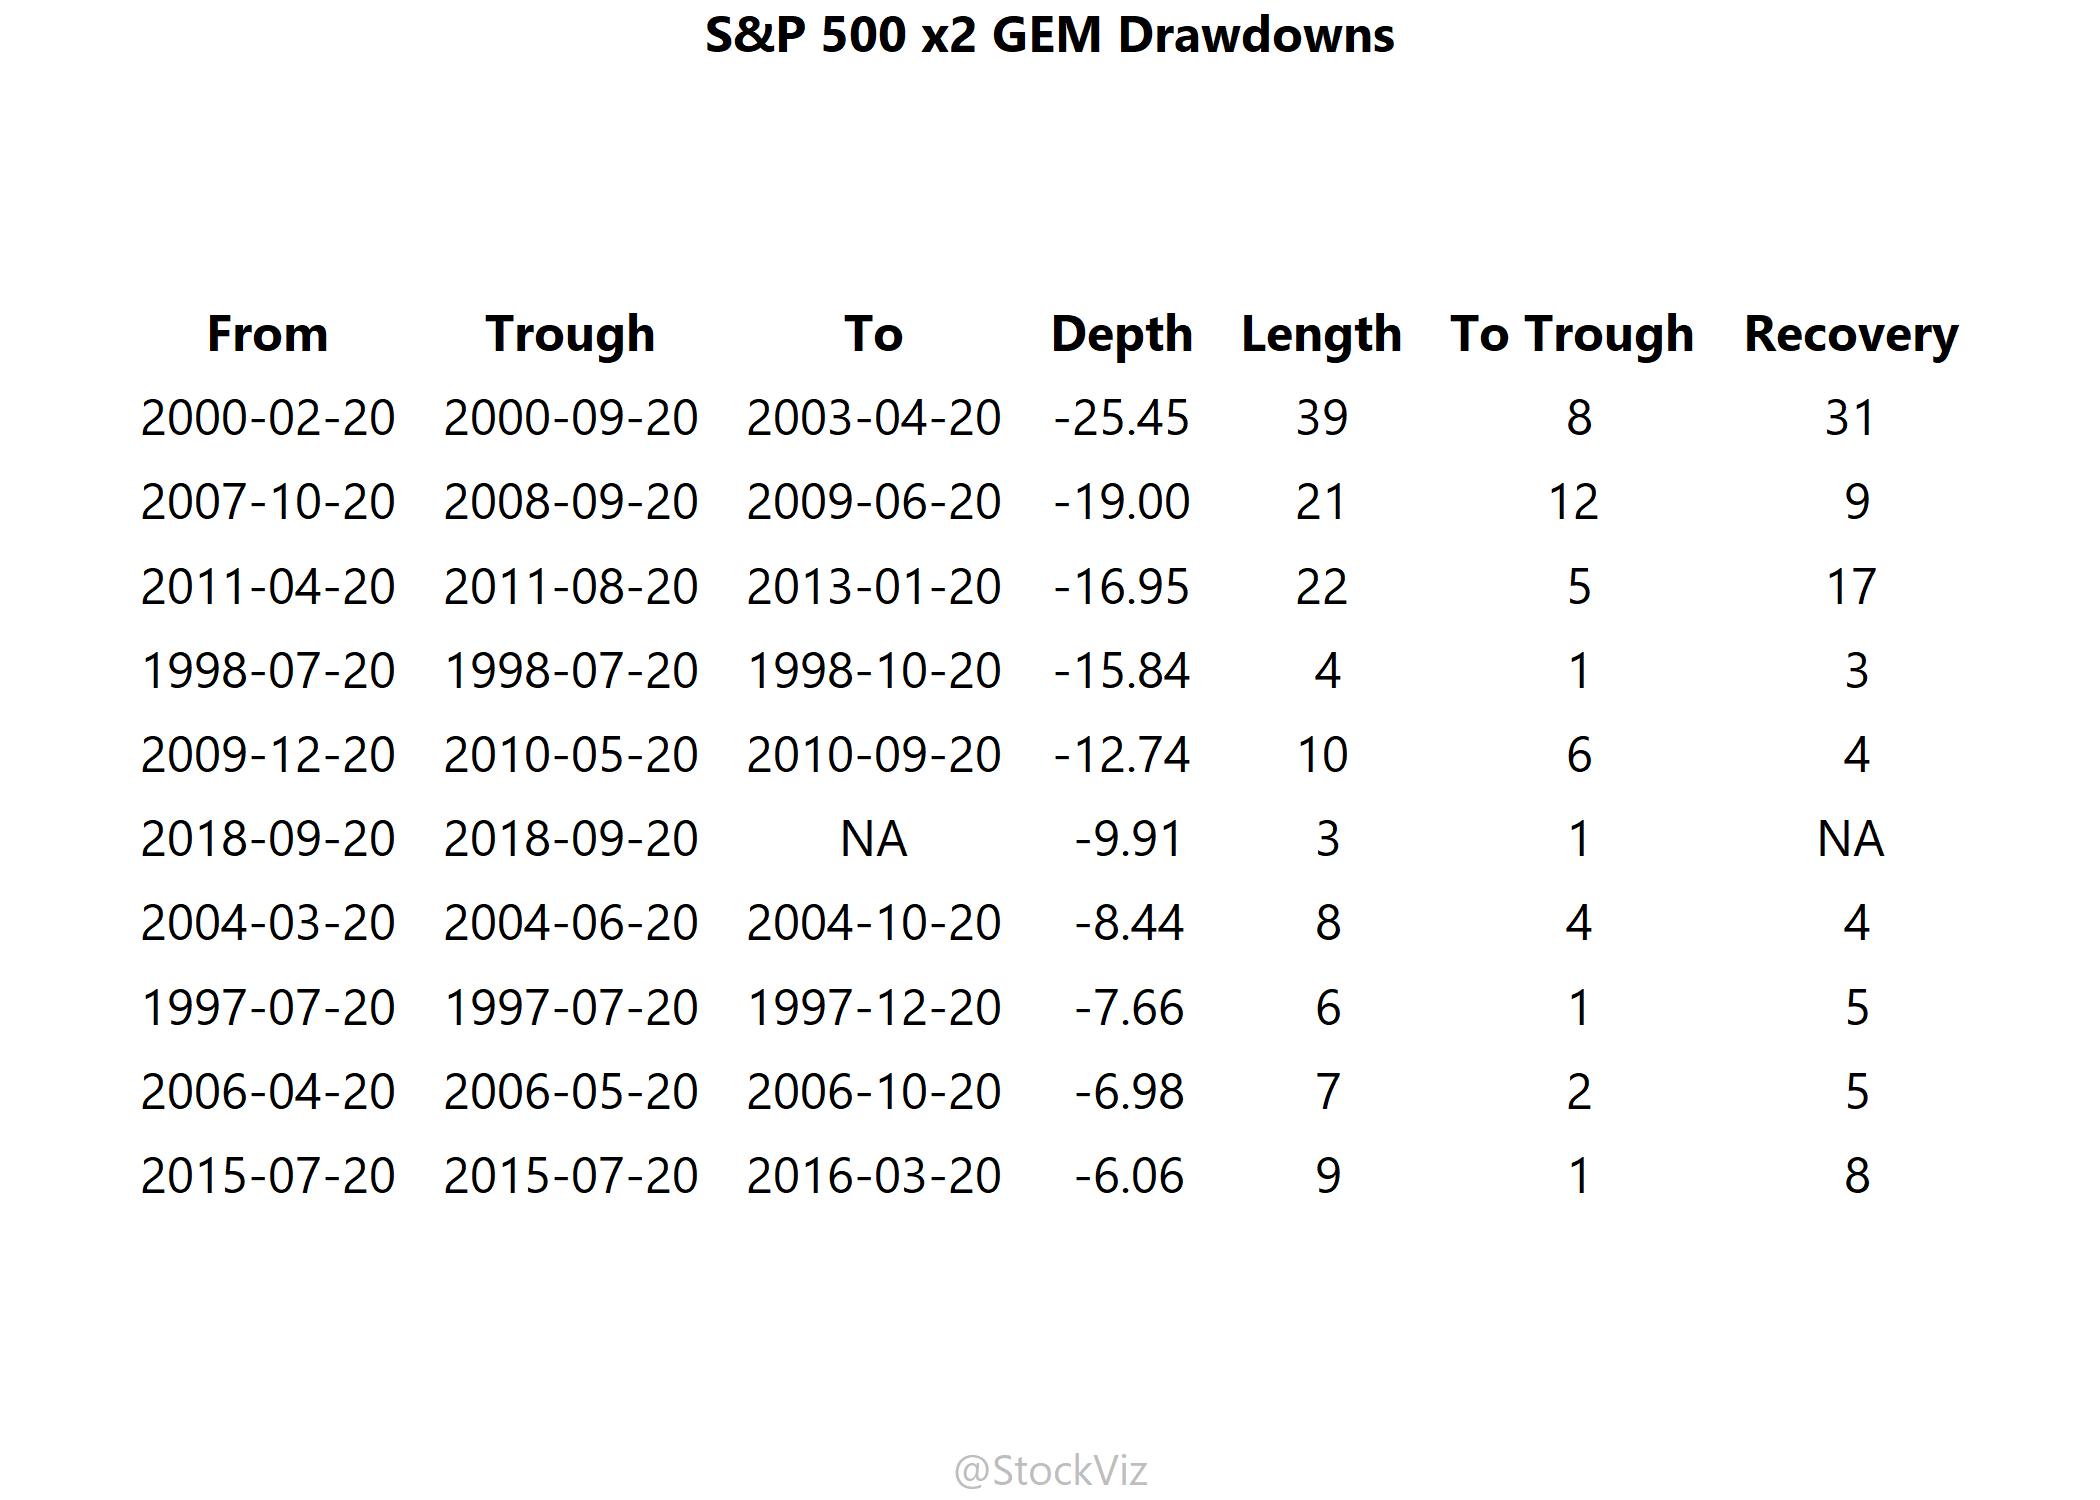 SP500x2.GEM.dd